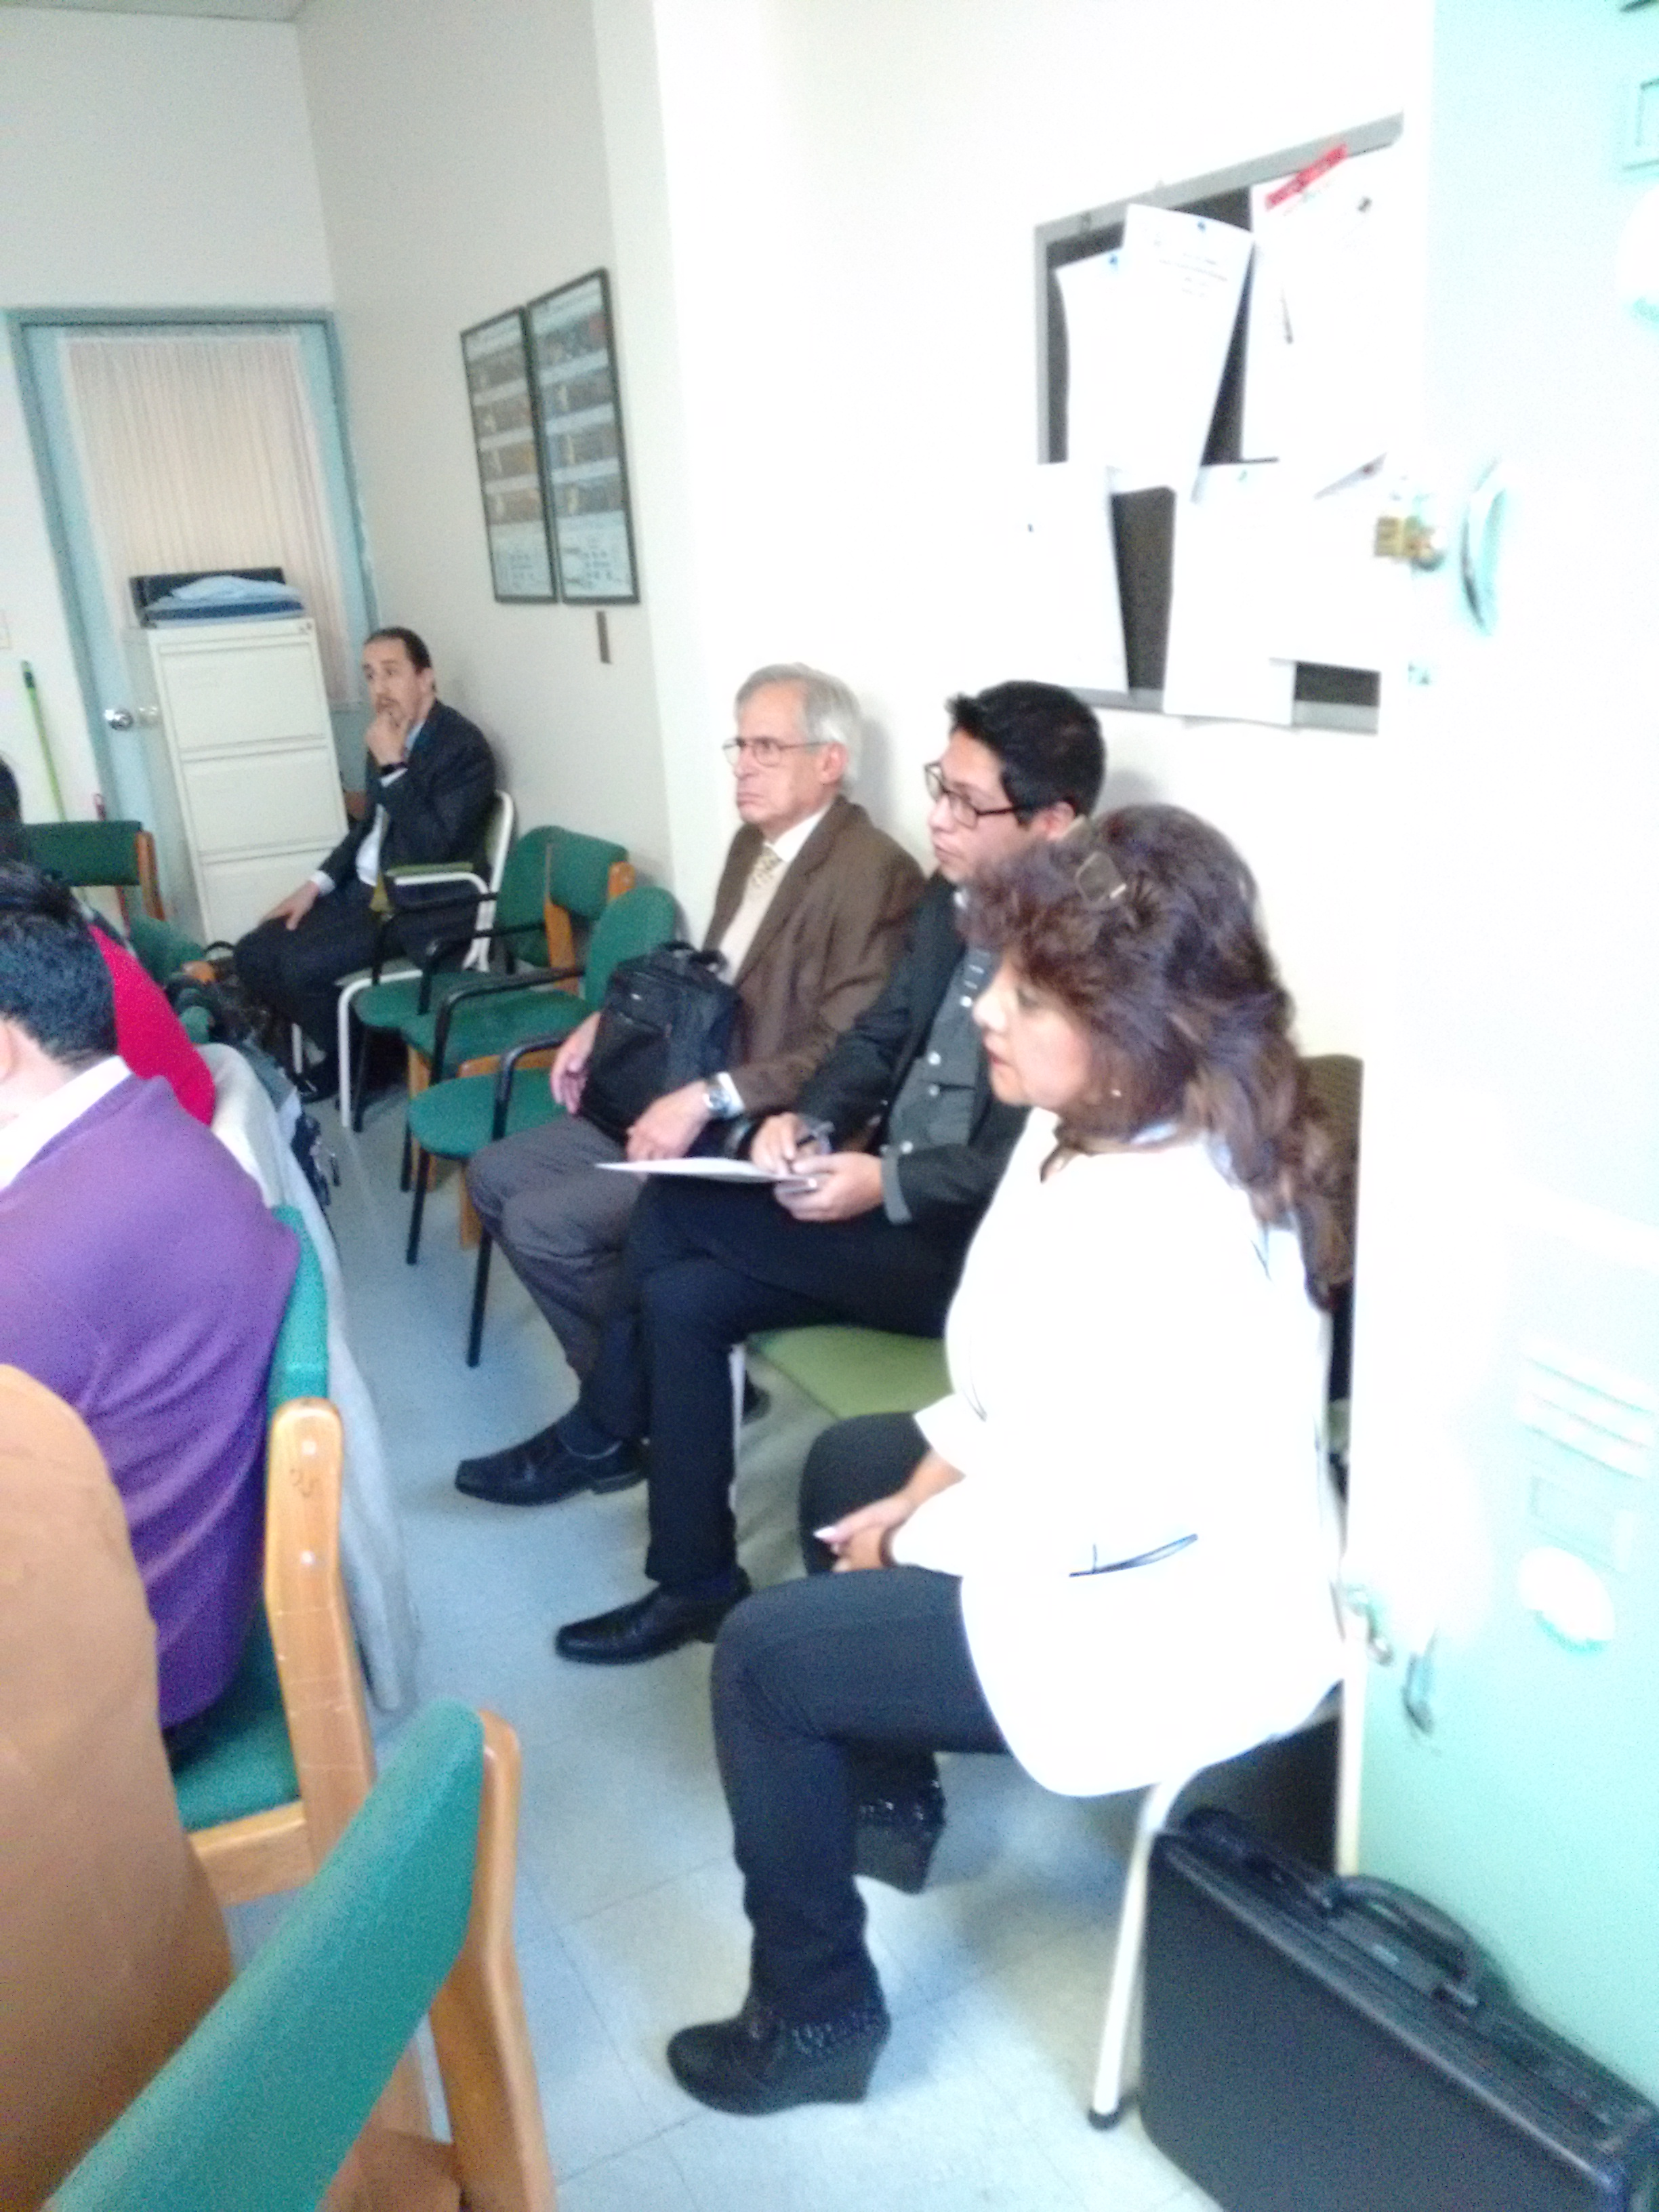 Dr. Elizabeth Chavez, ENT from Cochabamba, joins her colleagues and neurosurgeons at the IDN course in LA Paz.